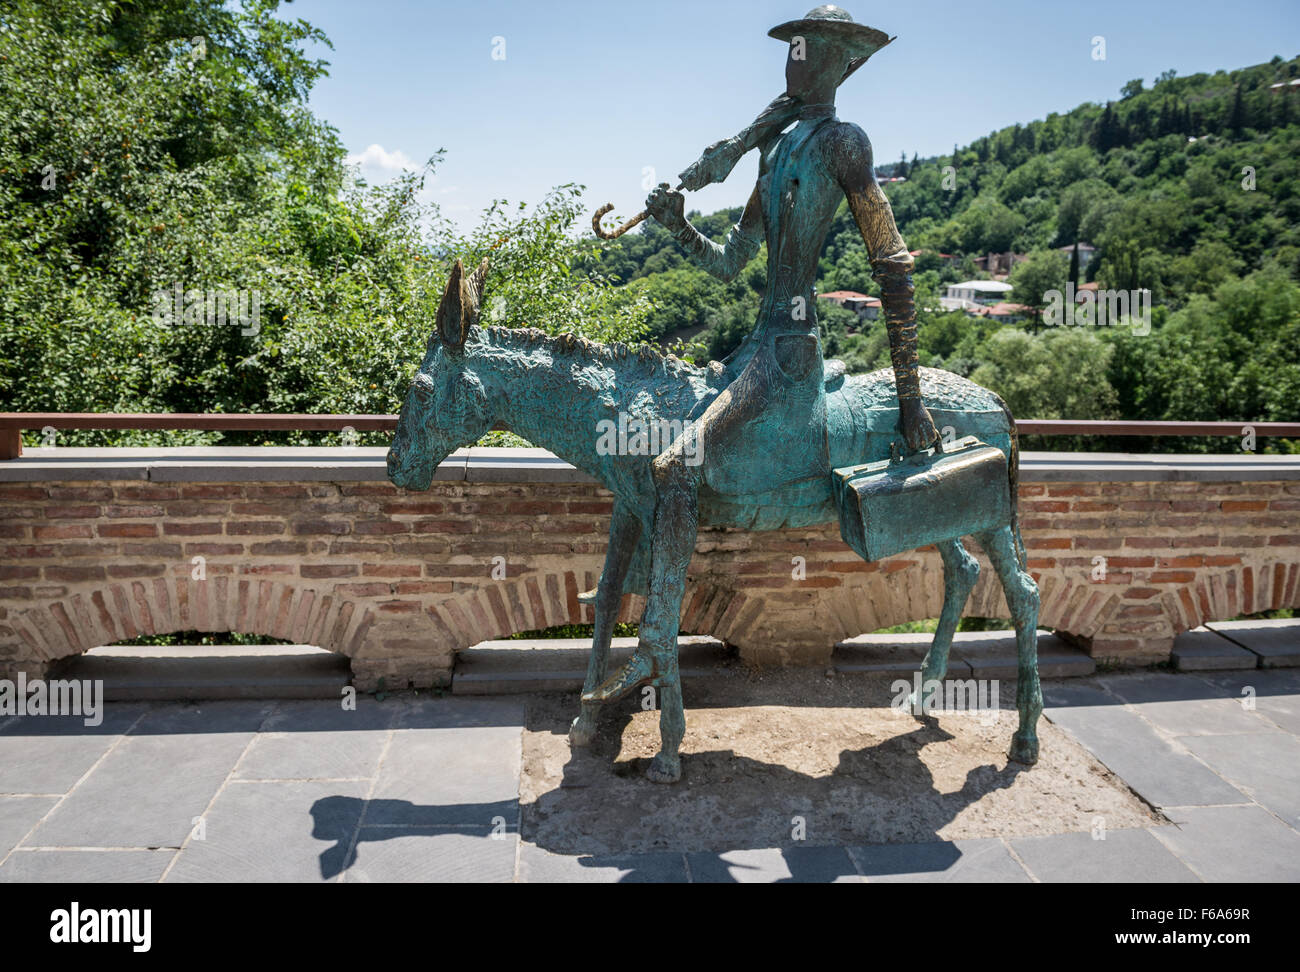 Statue of Healer on a donkey in Sighnaghi town in Kakheti region, one of the smallest town in Georgia - Stock Image